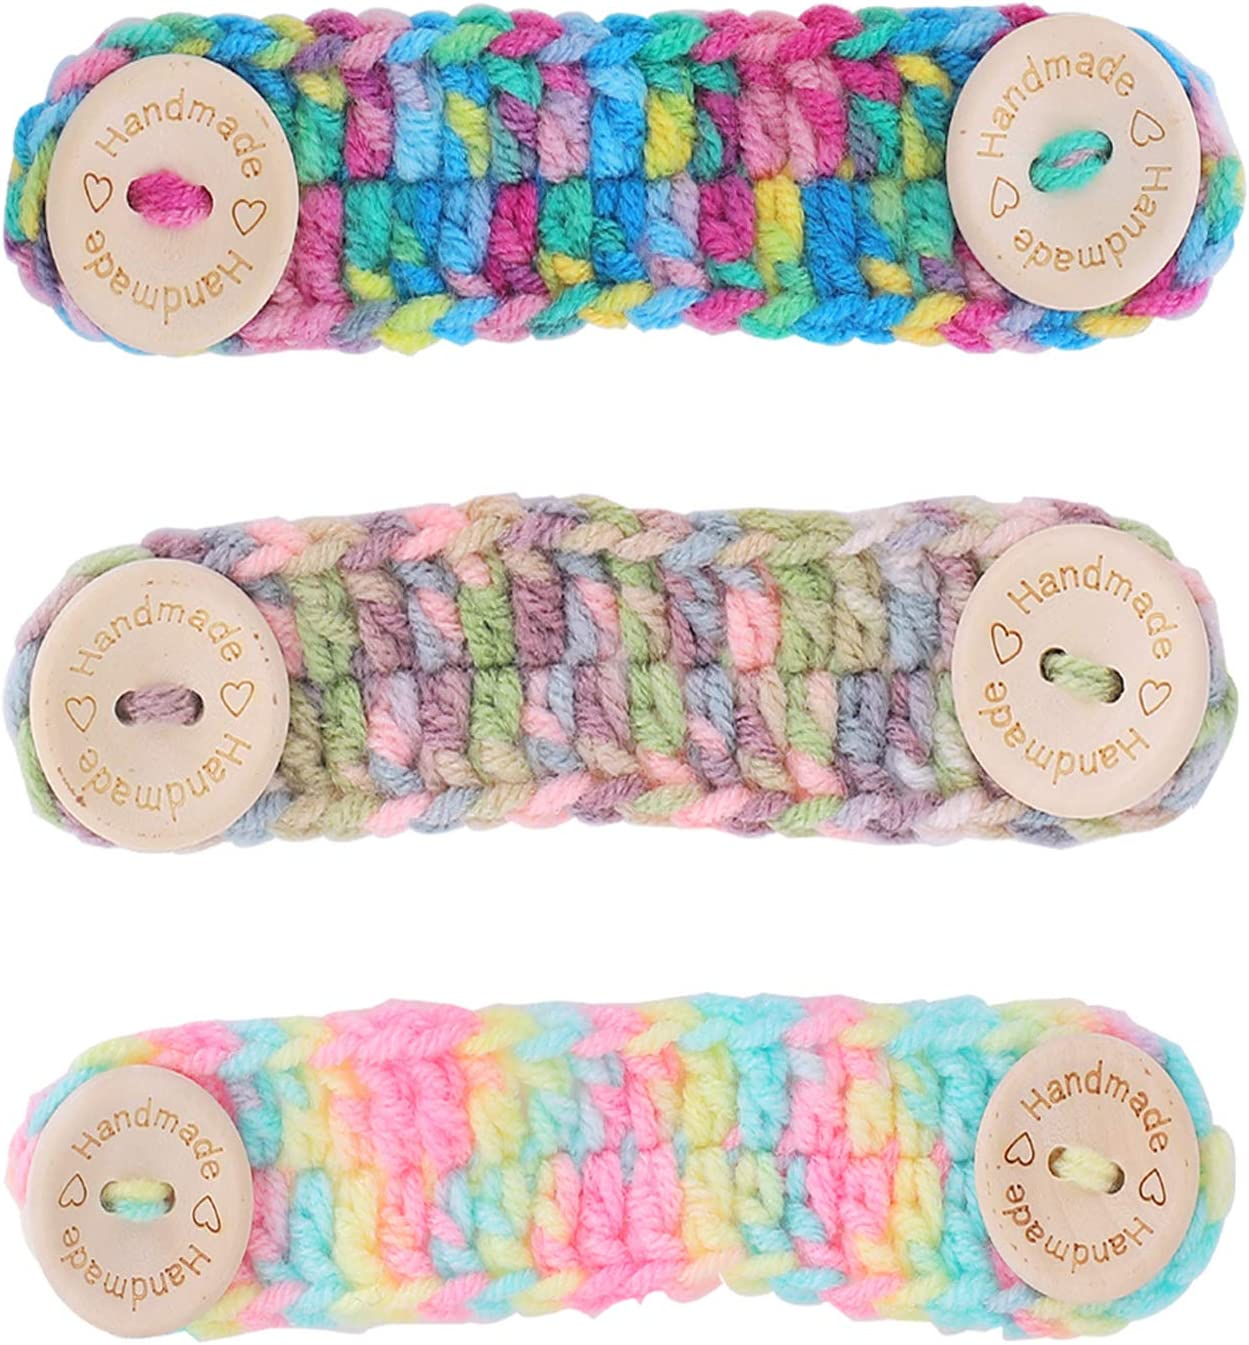 Comfort Mask Extenders with Wooden Buttons for Adults and Kids 3 Pack Crocheted Ear Saver for Face Mask